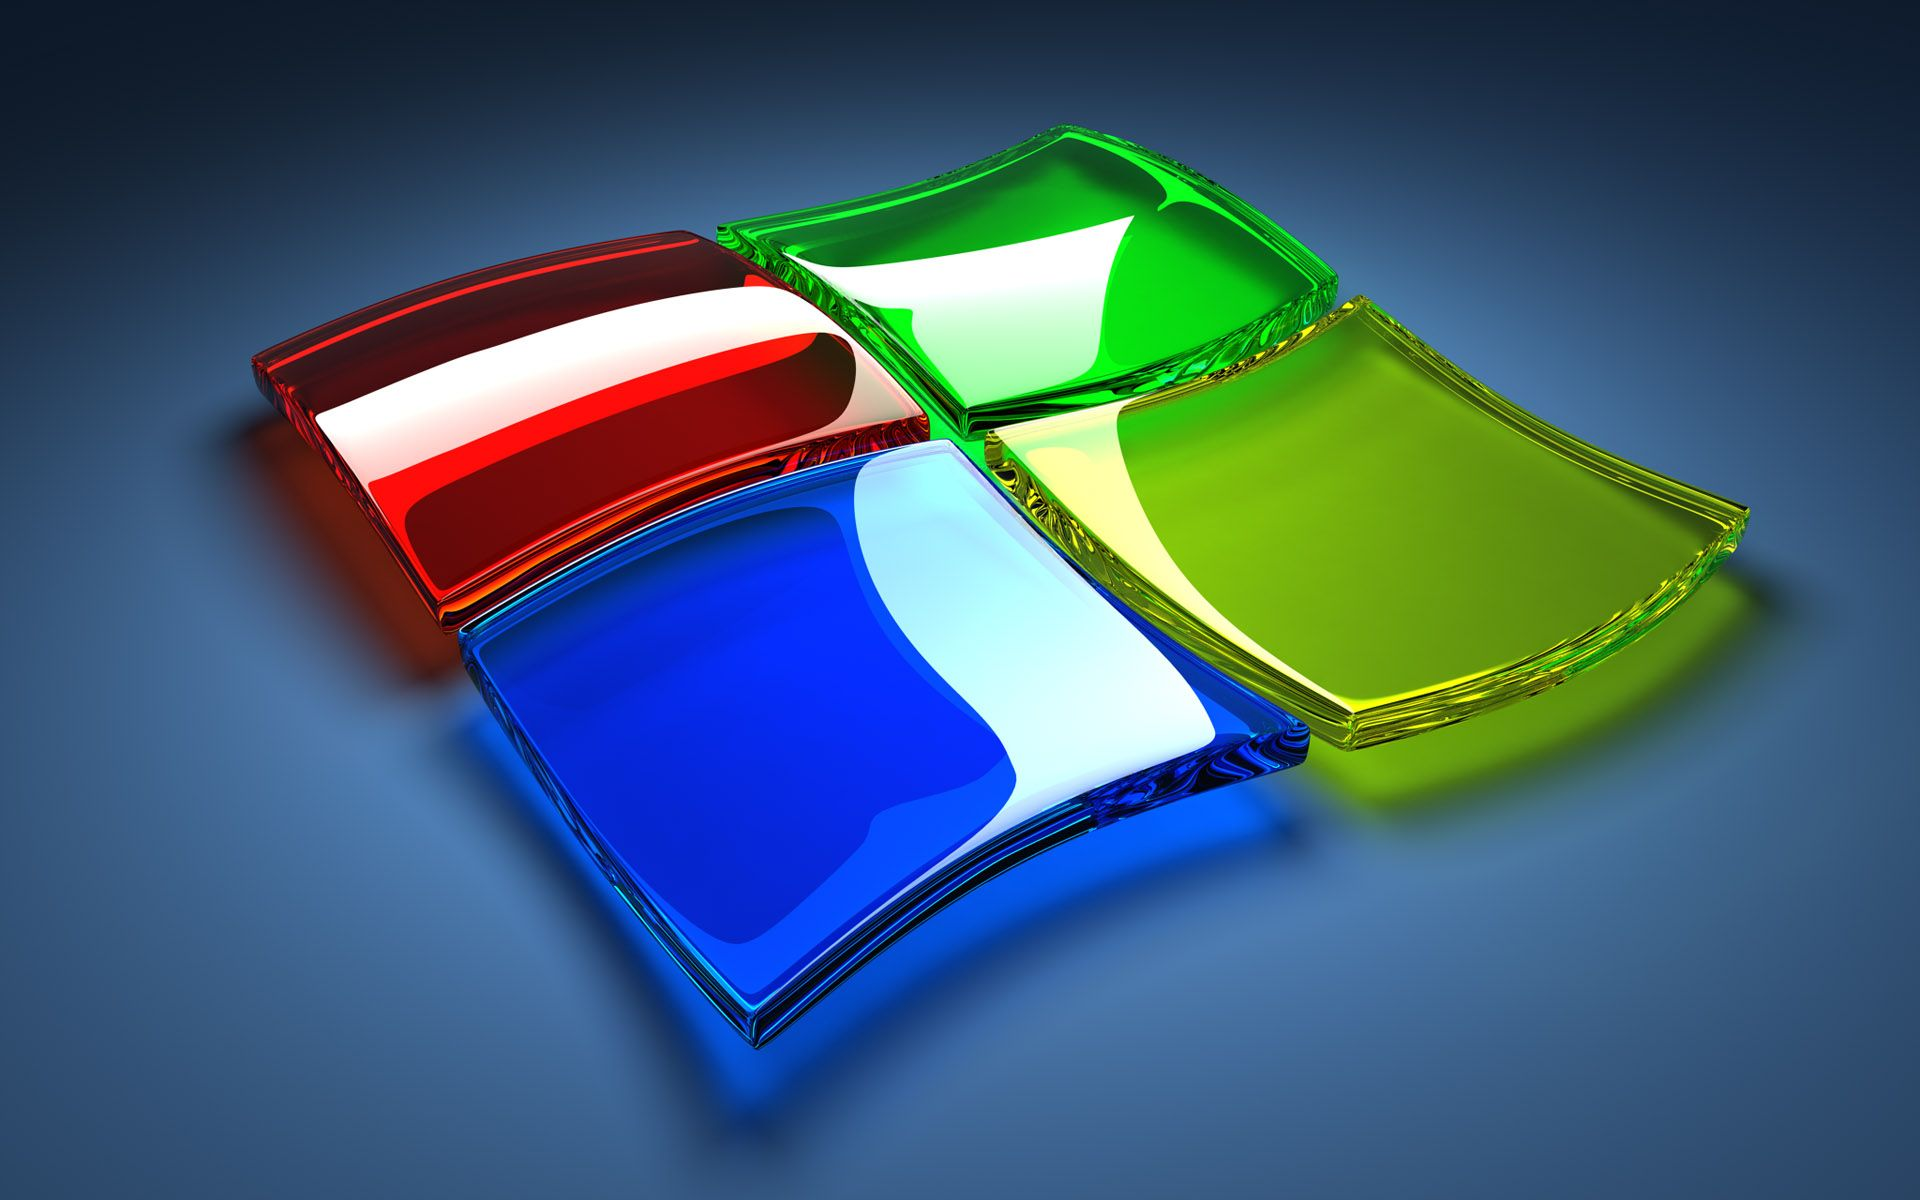 glass jello windows 7 backgrounds hd wallpaper | jello | pinterest